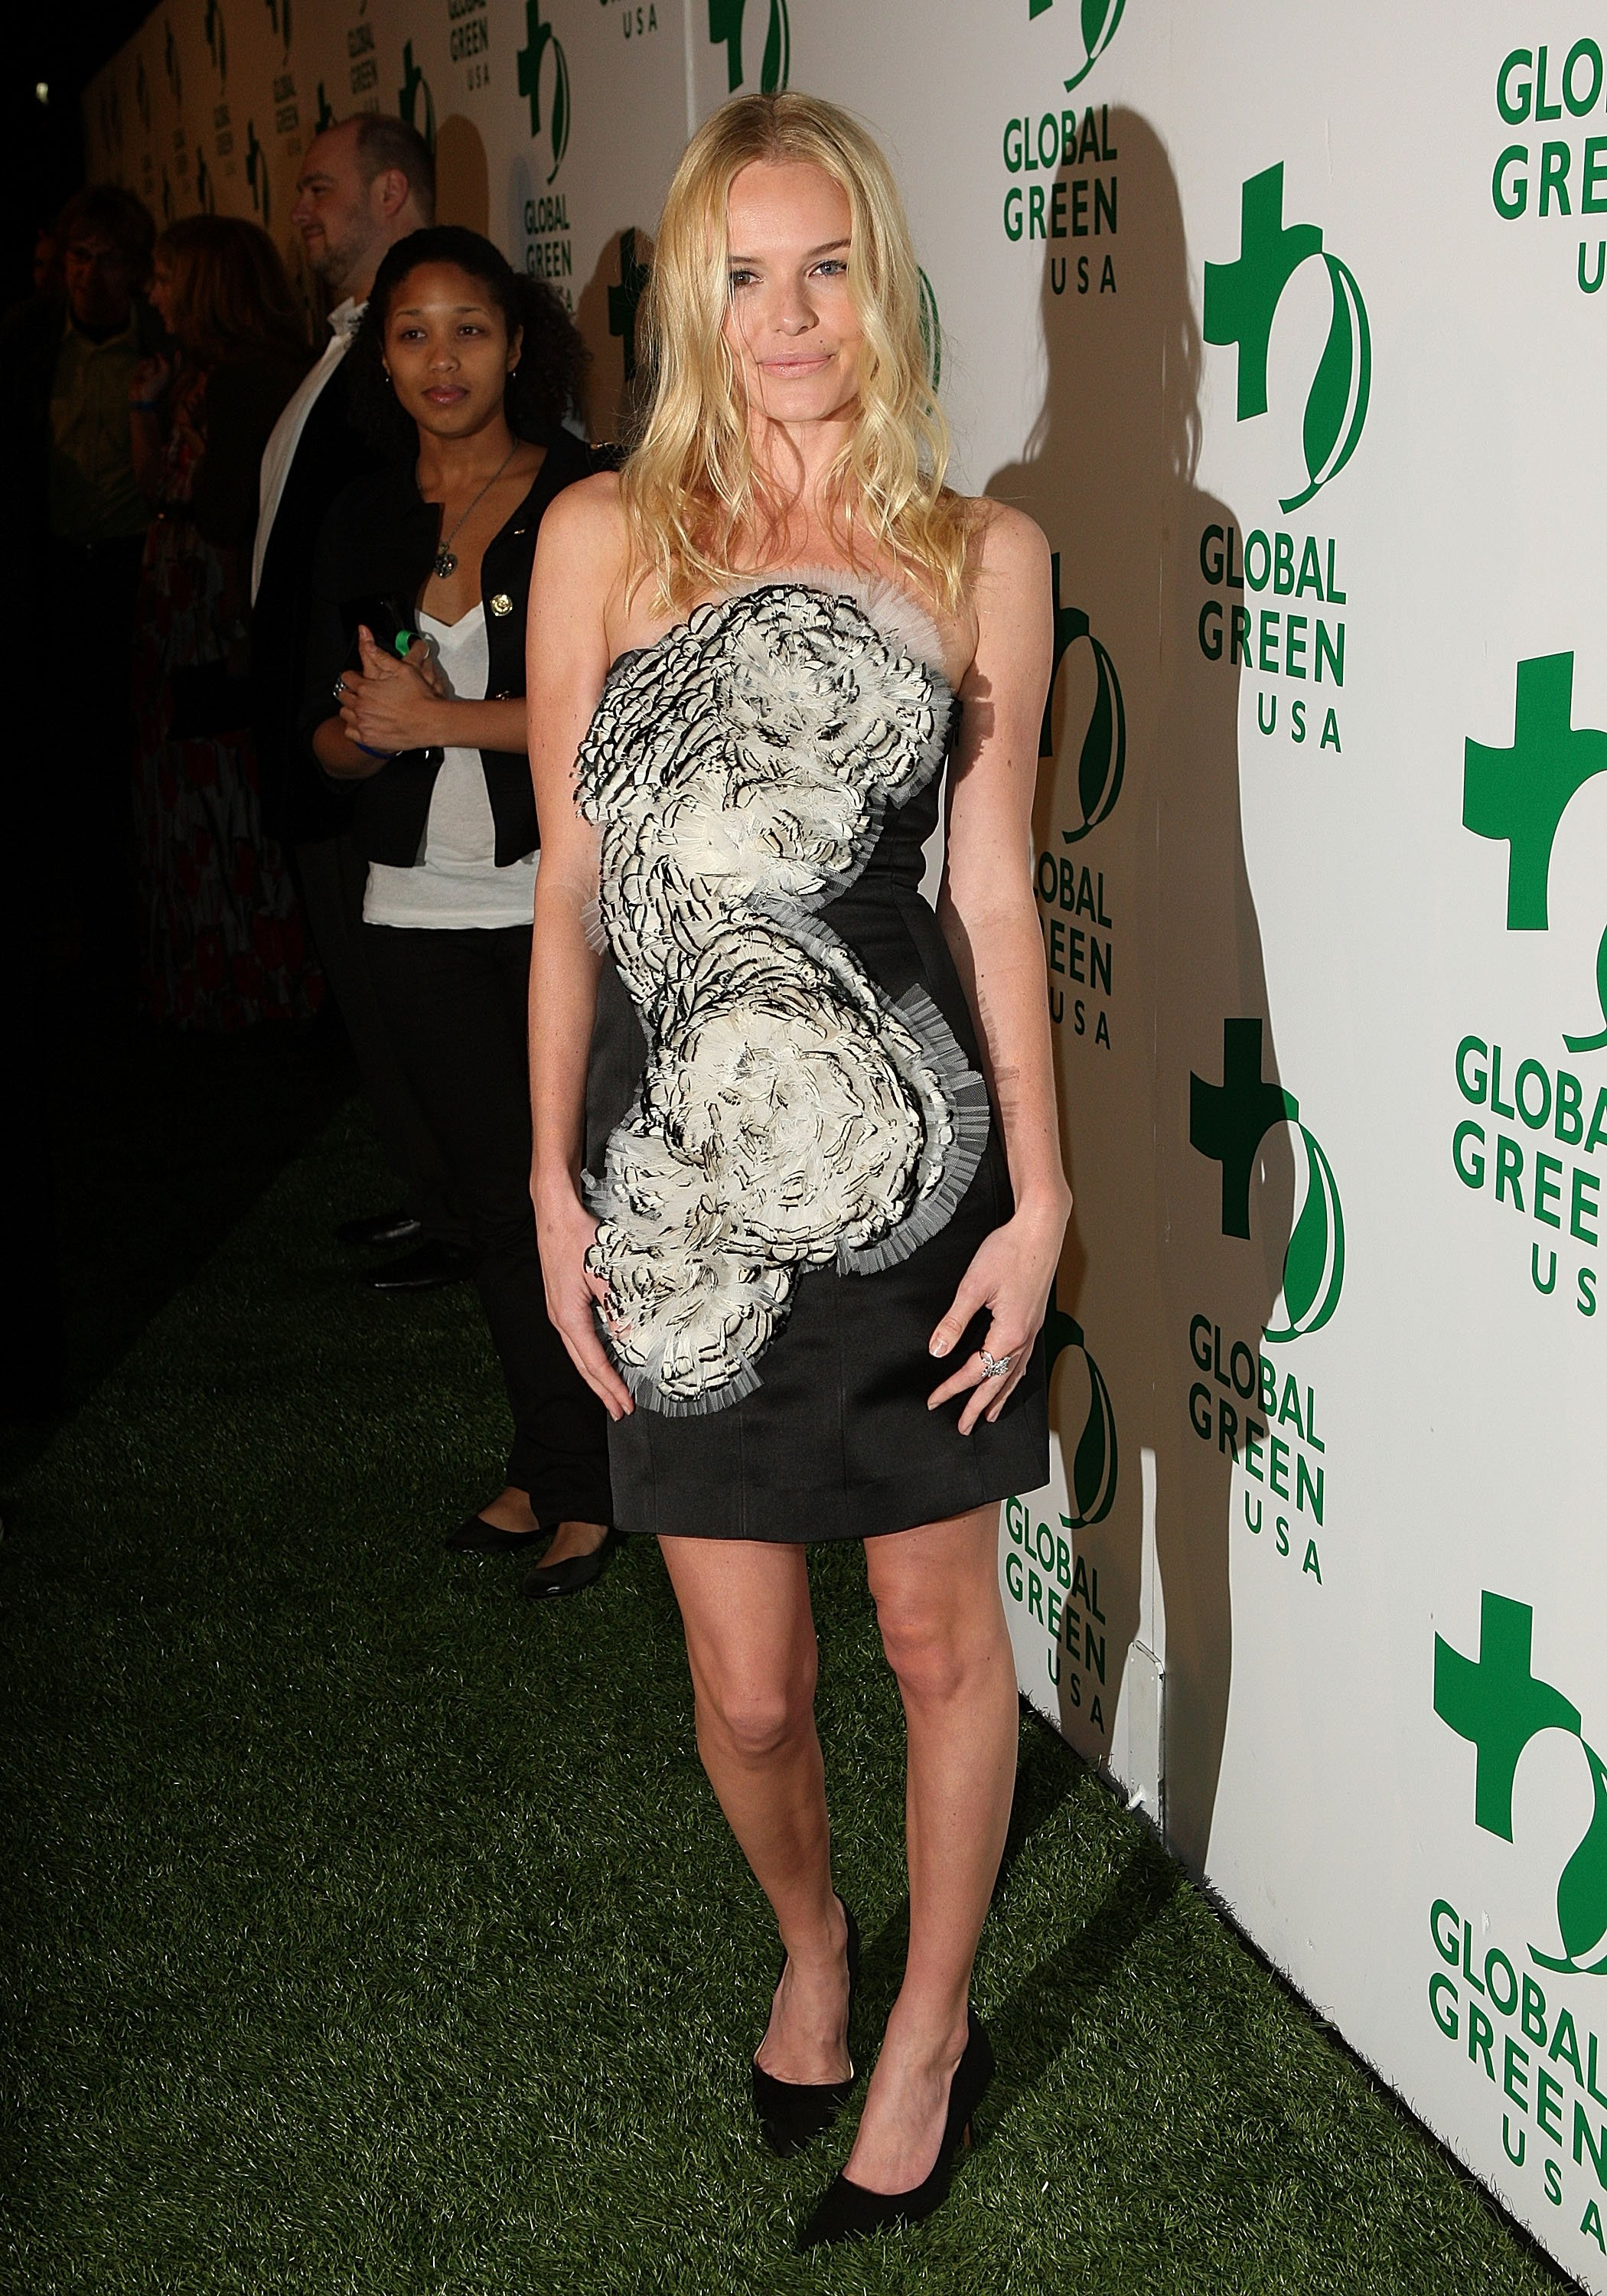 13348_Celebutopia-Kate_Bosworth_arrives_at_Global_Green_USA63s_6th_Annual_Pre-Oscar_Party-06_122_419lo.jpg